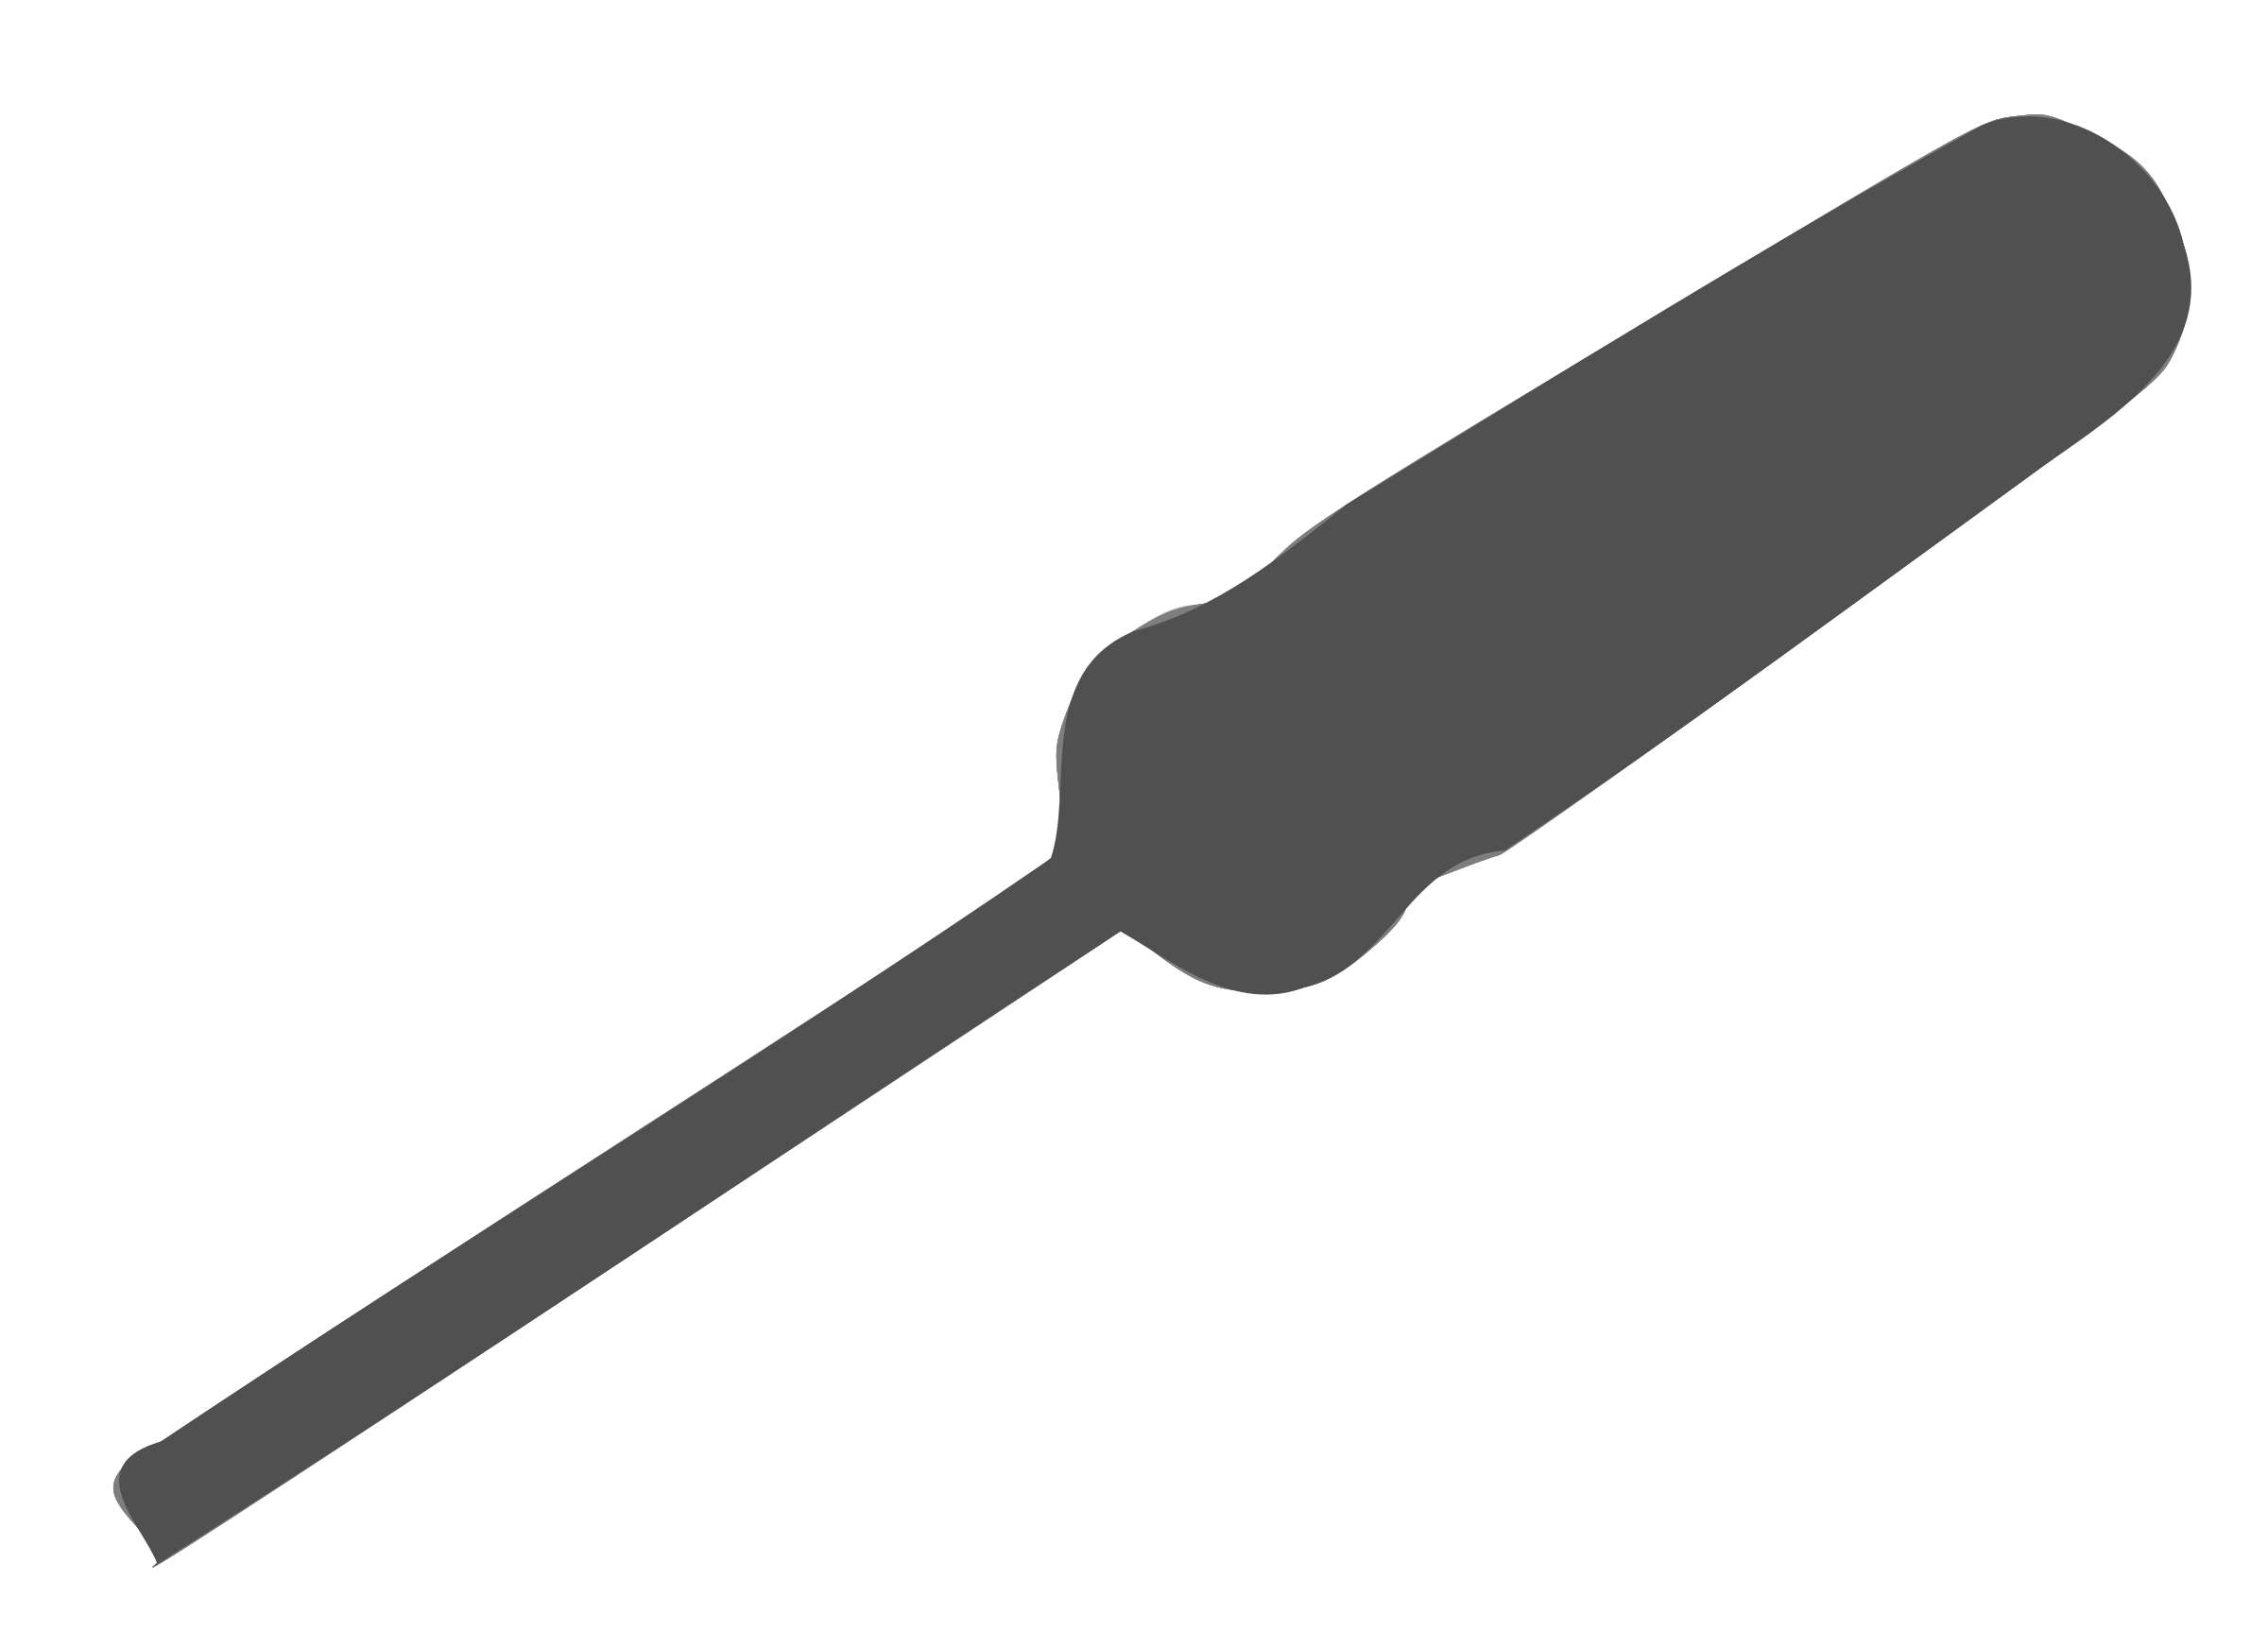 Screwdriver clipart black and white. Silhouette at getdrawings com